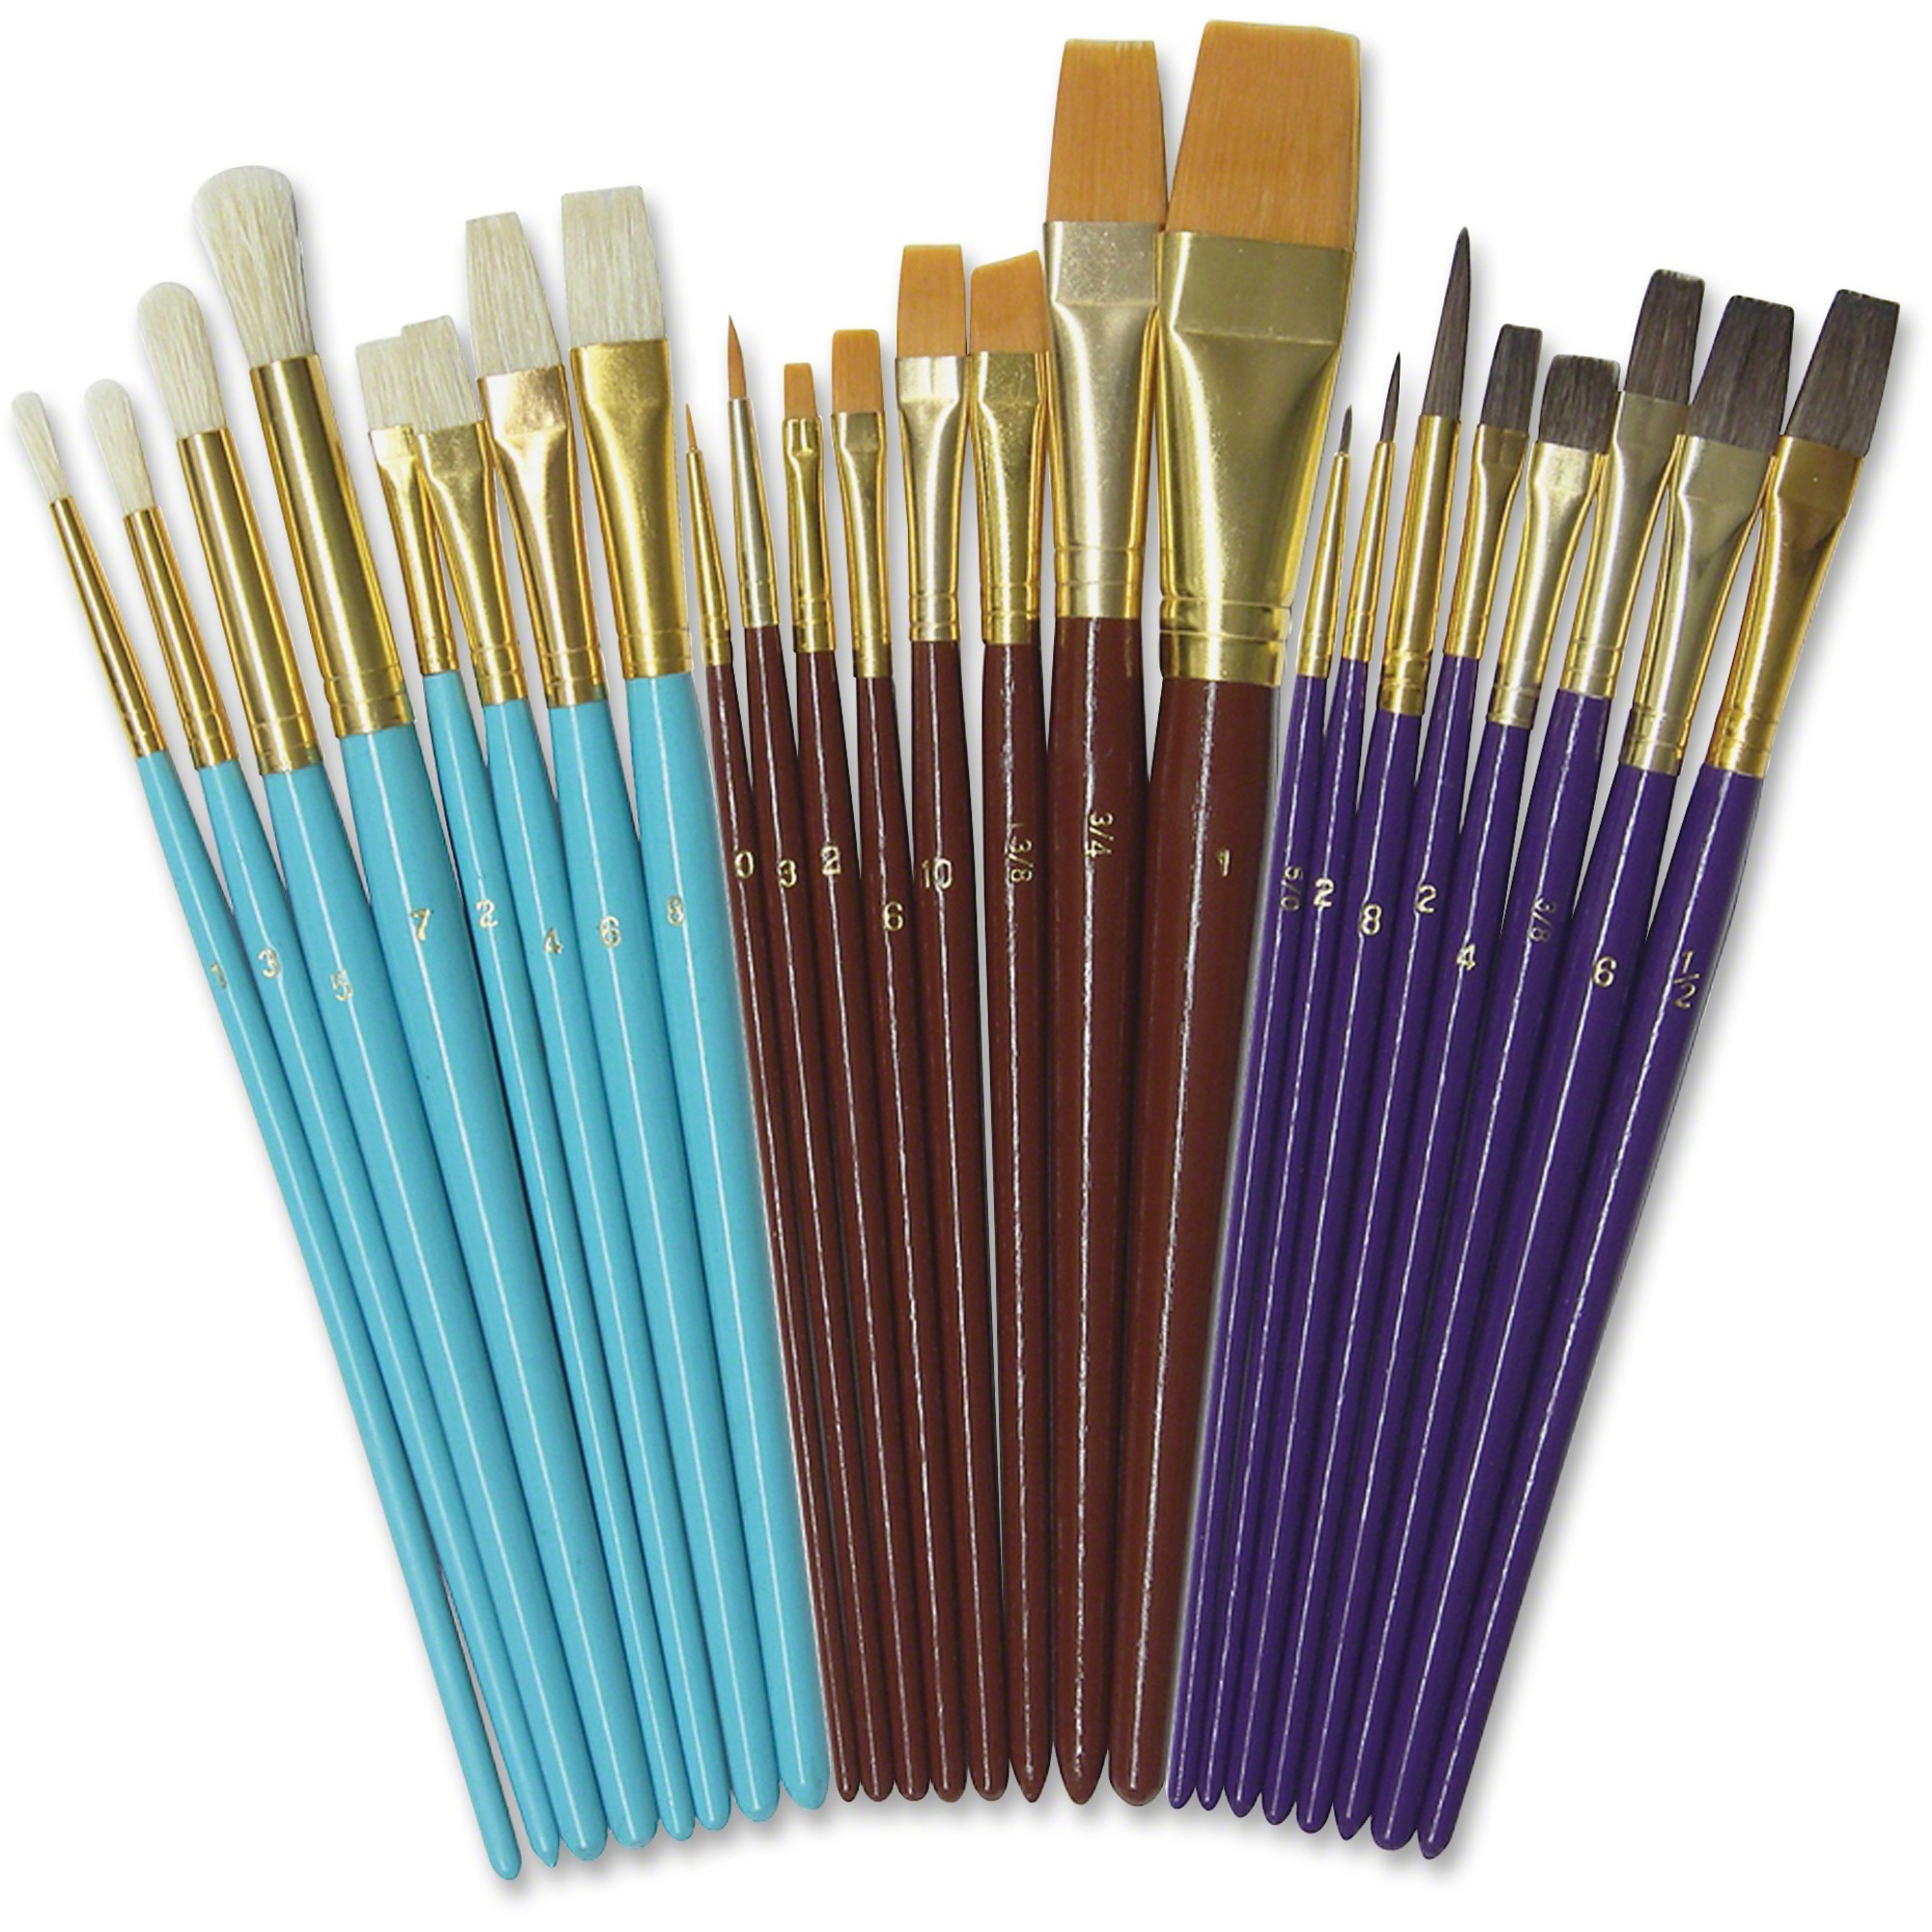 Pacon Corporation Creativity Street Deluxe Brush Assortment - 24 Brush(Es) Natural Wood - Aluminum Ferrule